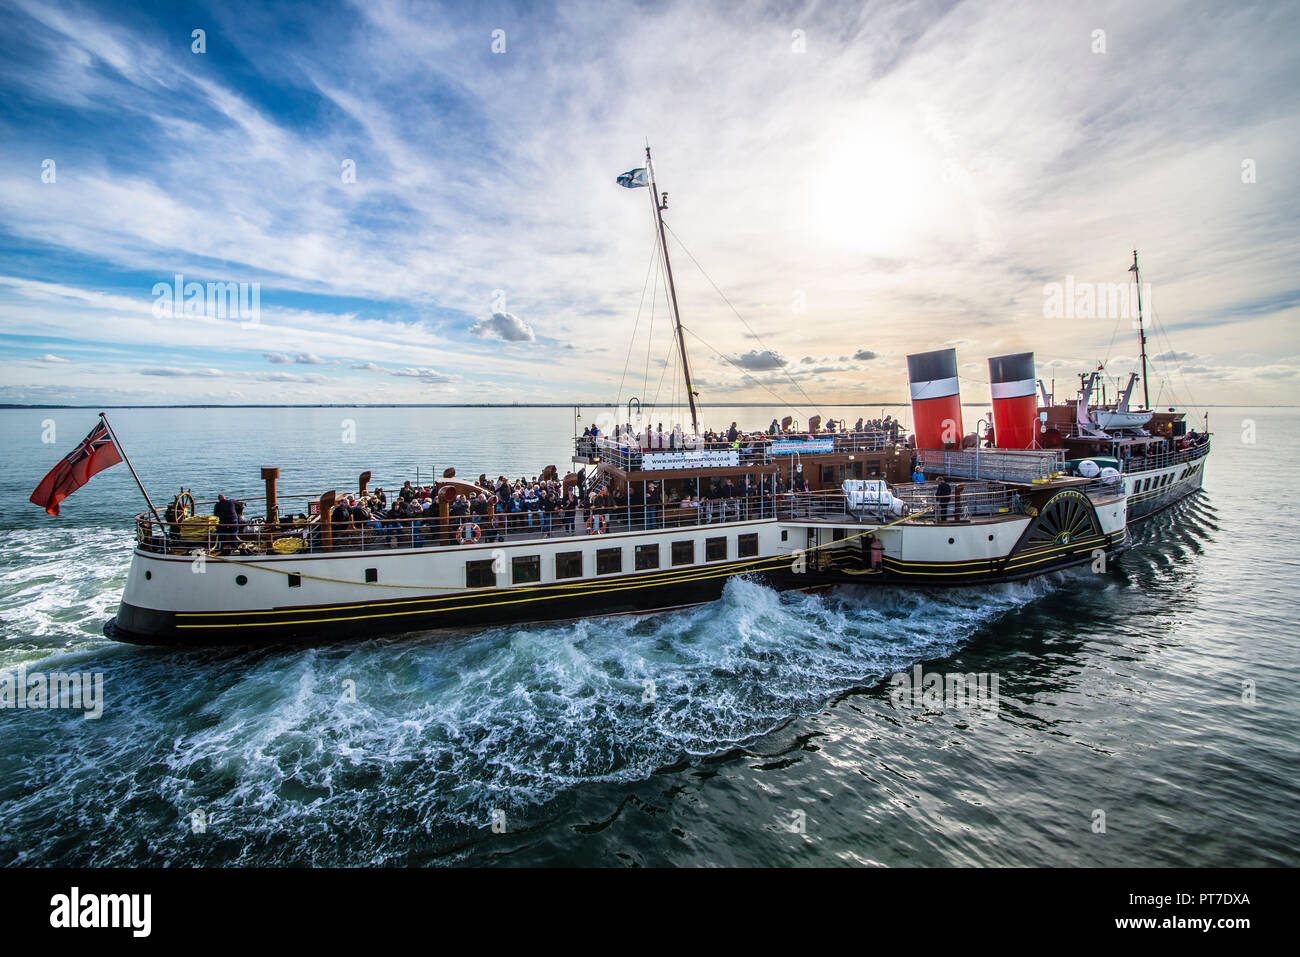 paddle-steamer-waverley-pulling-away-from-southend-pier-on-the-thames-estuary-with-passengers-heading-towards-london-space-for-copy-PT7DXA.jpg